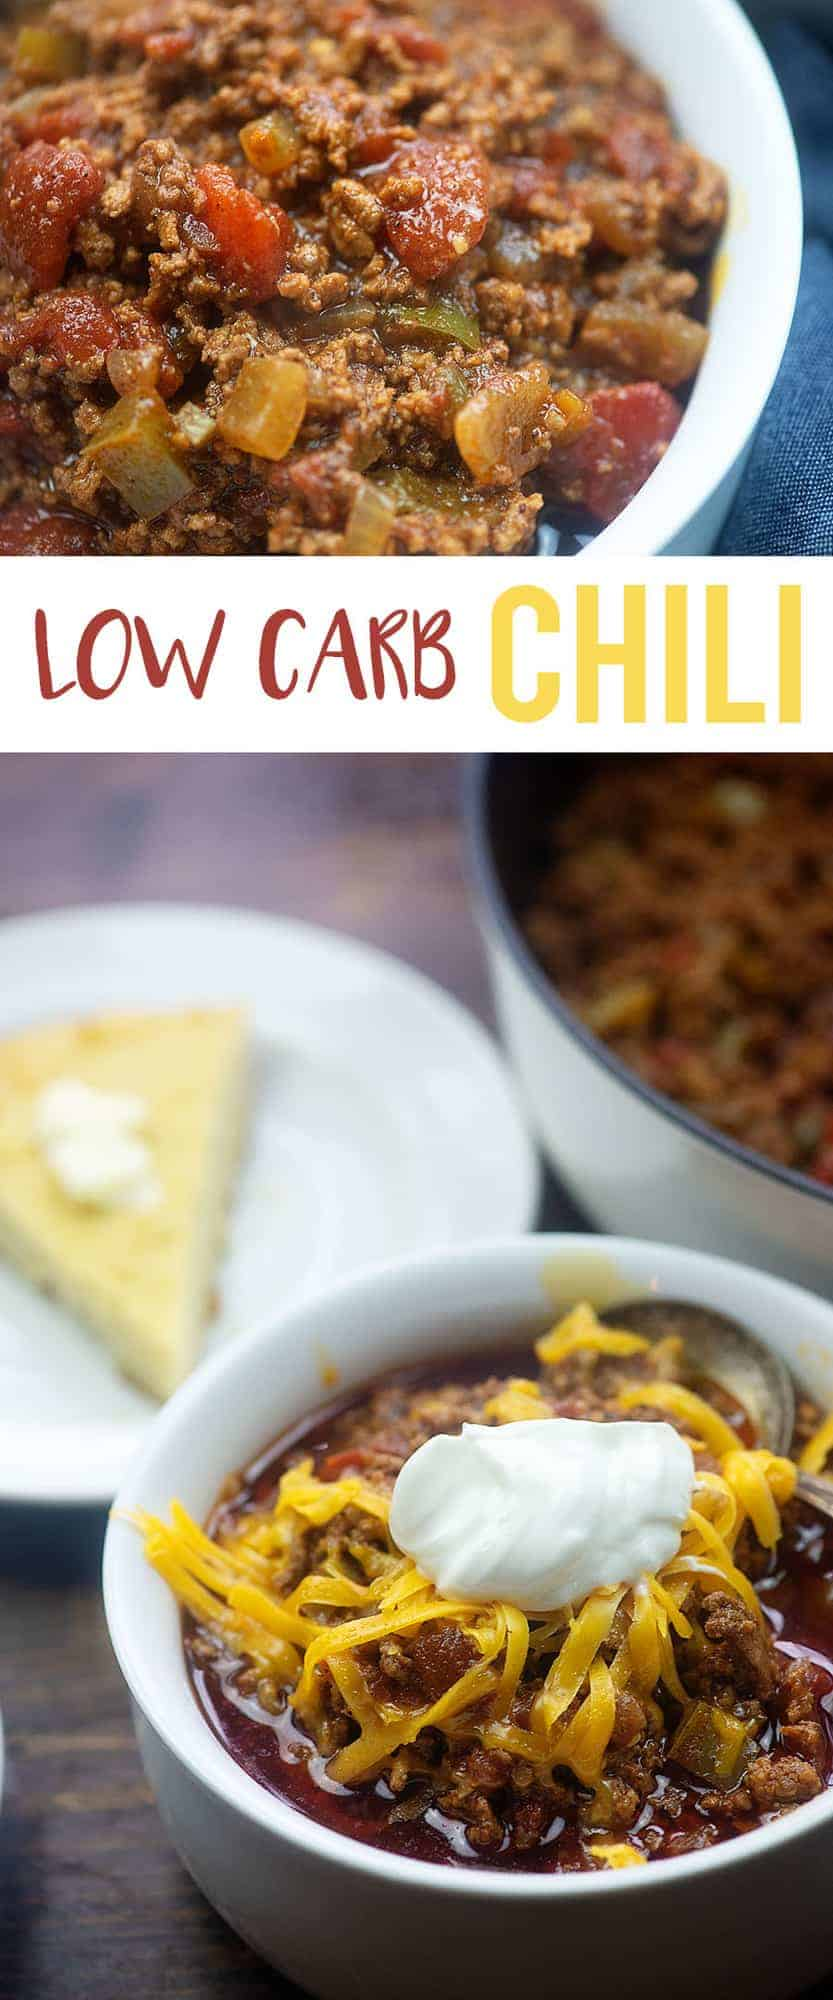 We've replaced our traditional chili recipe with this low carb chili and even the carb-lovers devour this one! It's seriously just the best chili ever!